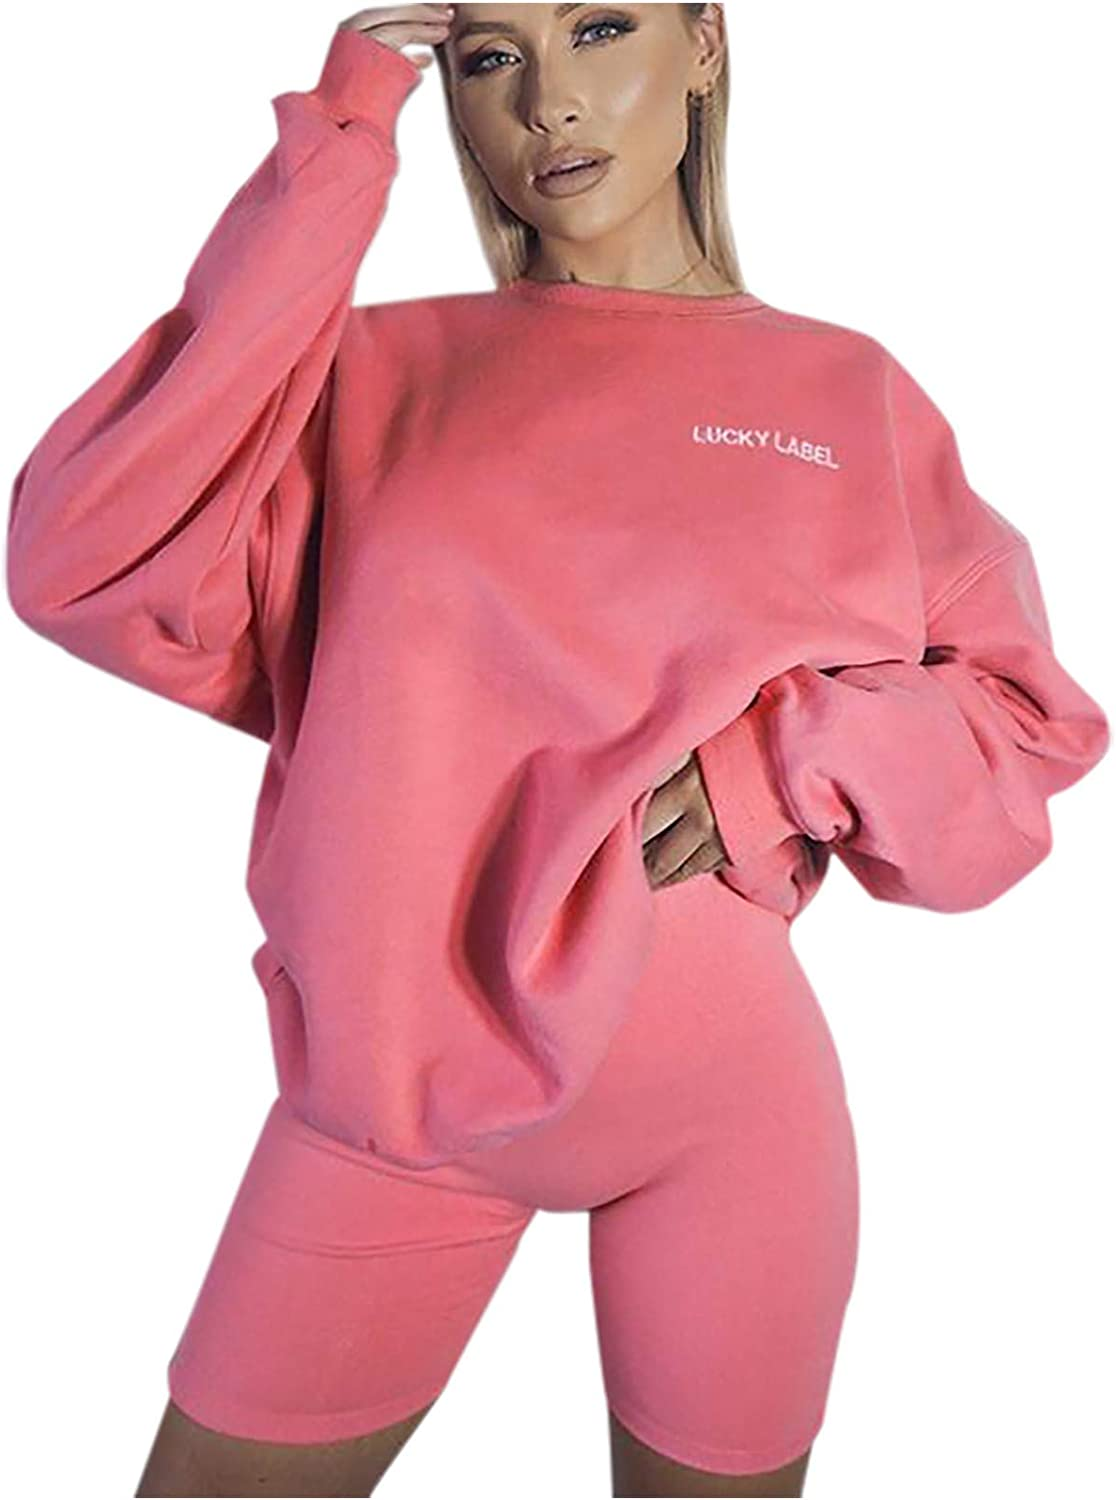 Womens O Neck Sportswear with Short Leggings Set Winter Long Sleeve Shorts Set Letter Printed Casual Jogging Suit